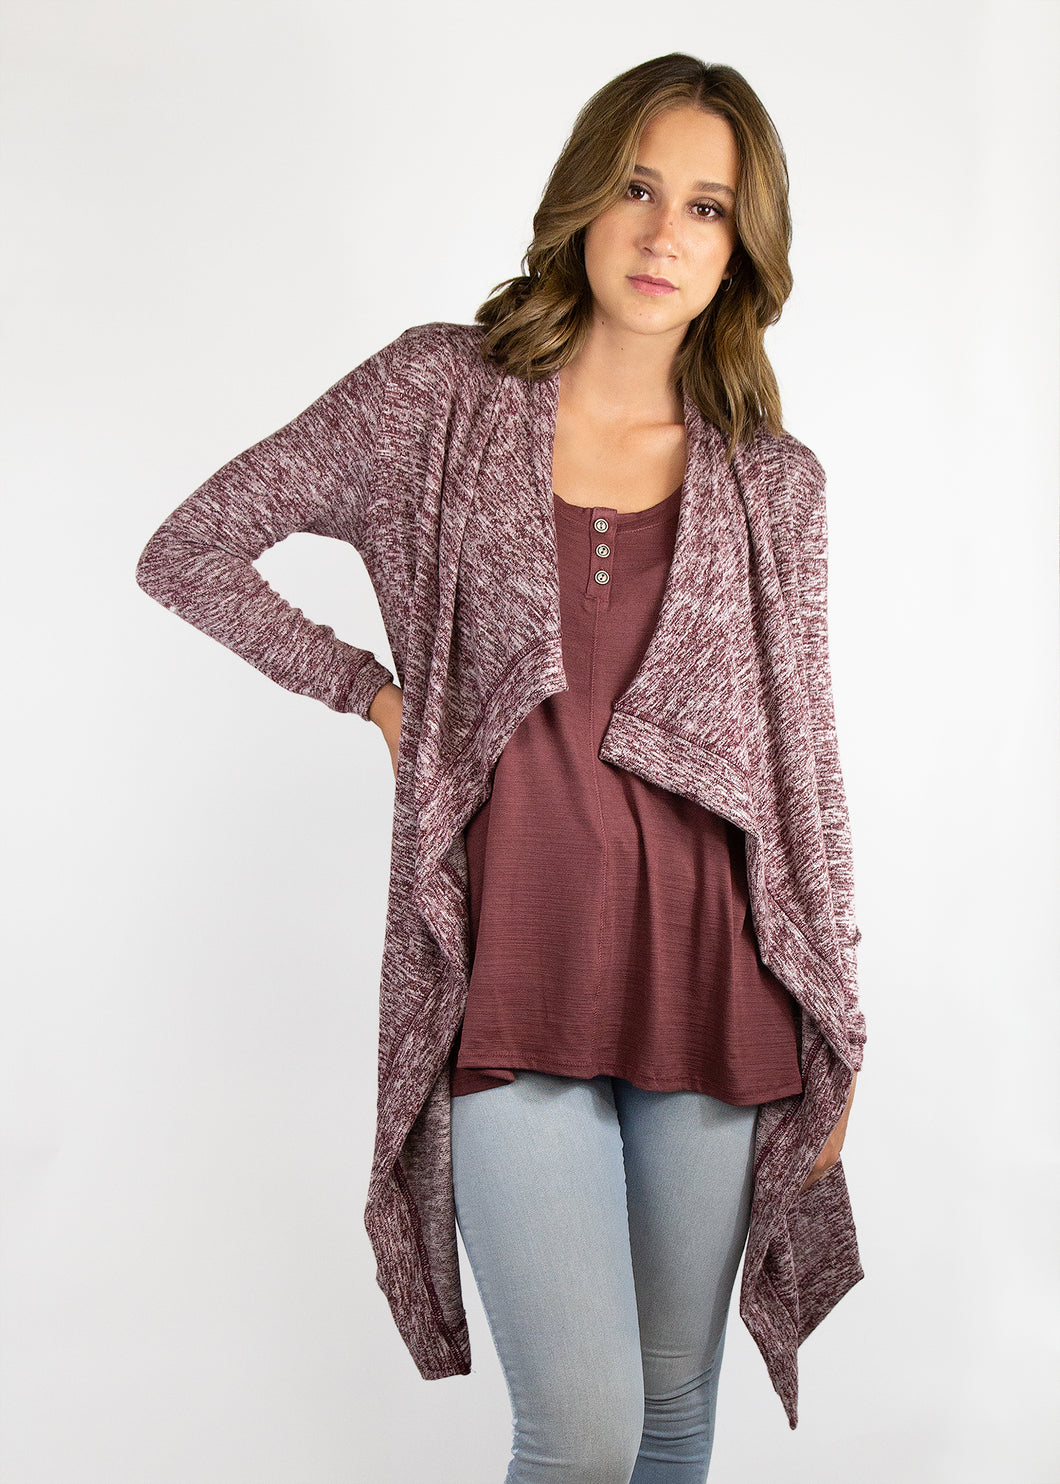 Dusty Miller Cardigan - Burgundy - (3X)